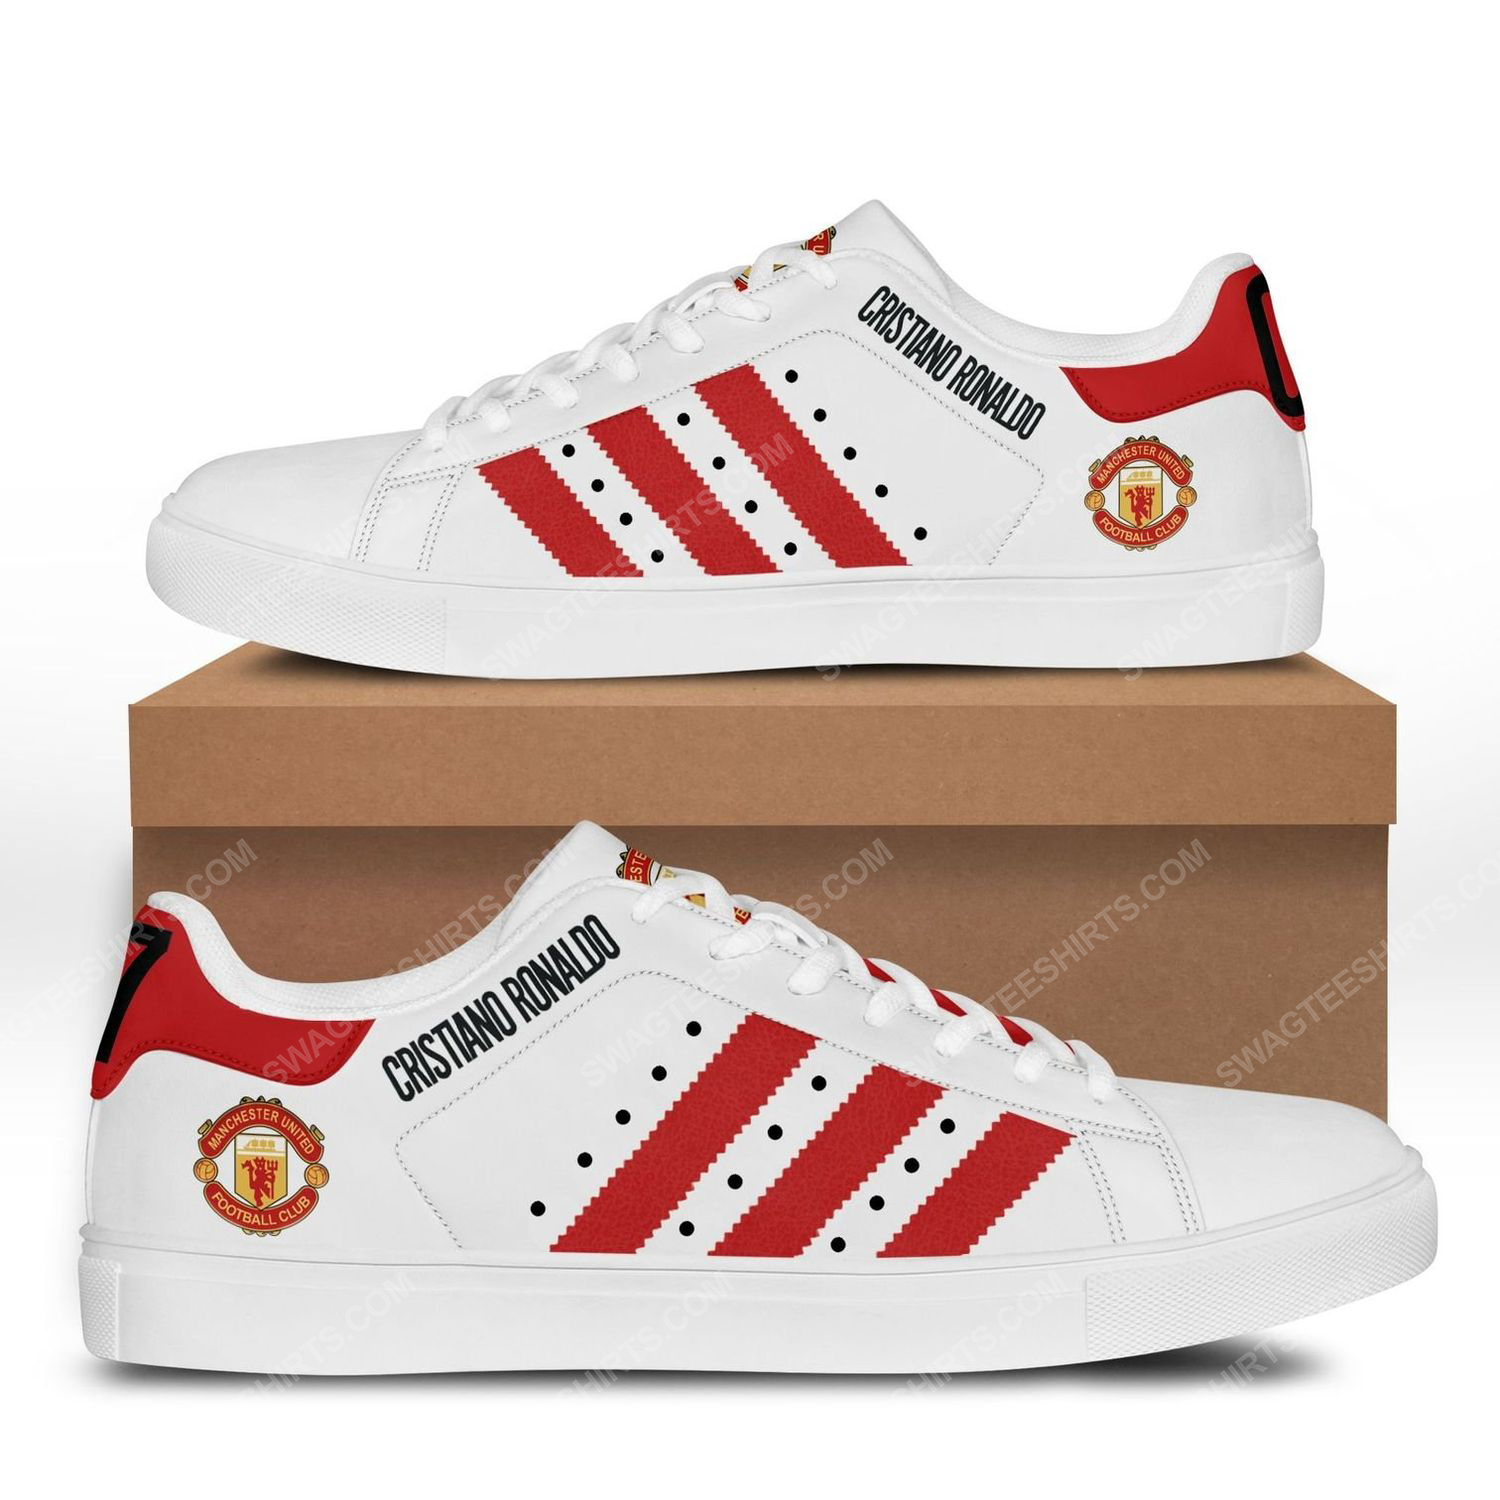 Manchester united cr7 stan smith shoes 3